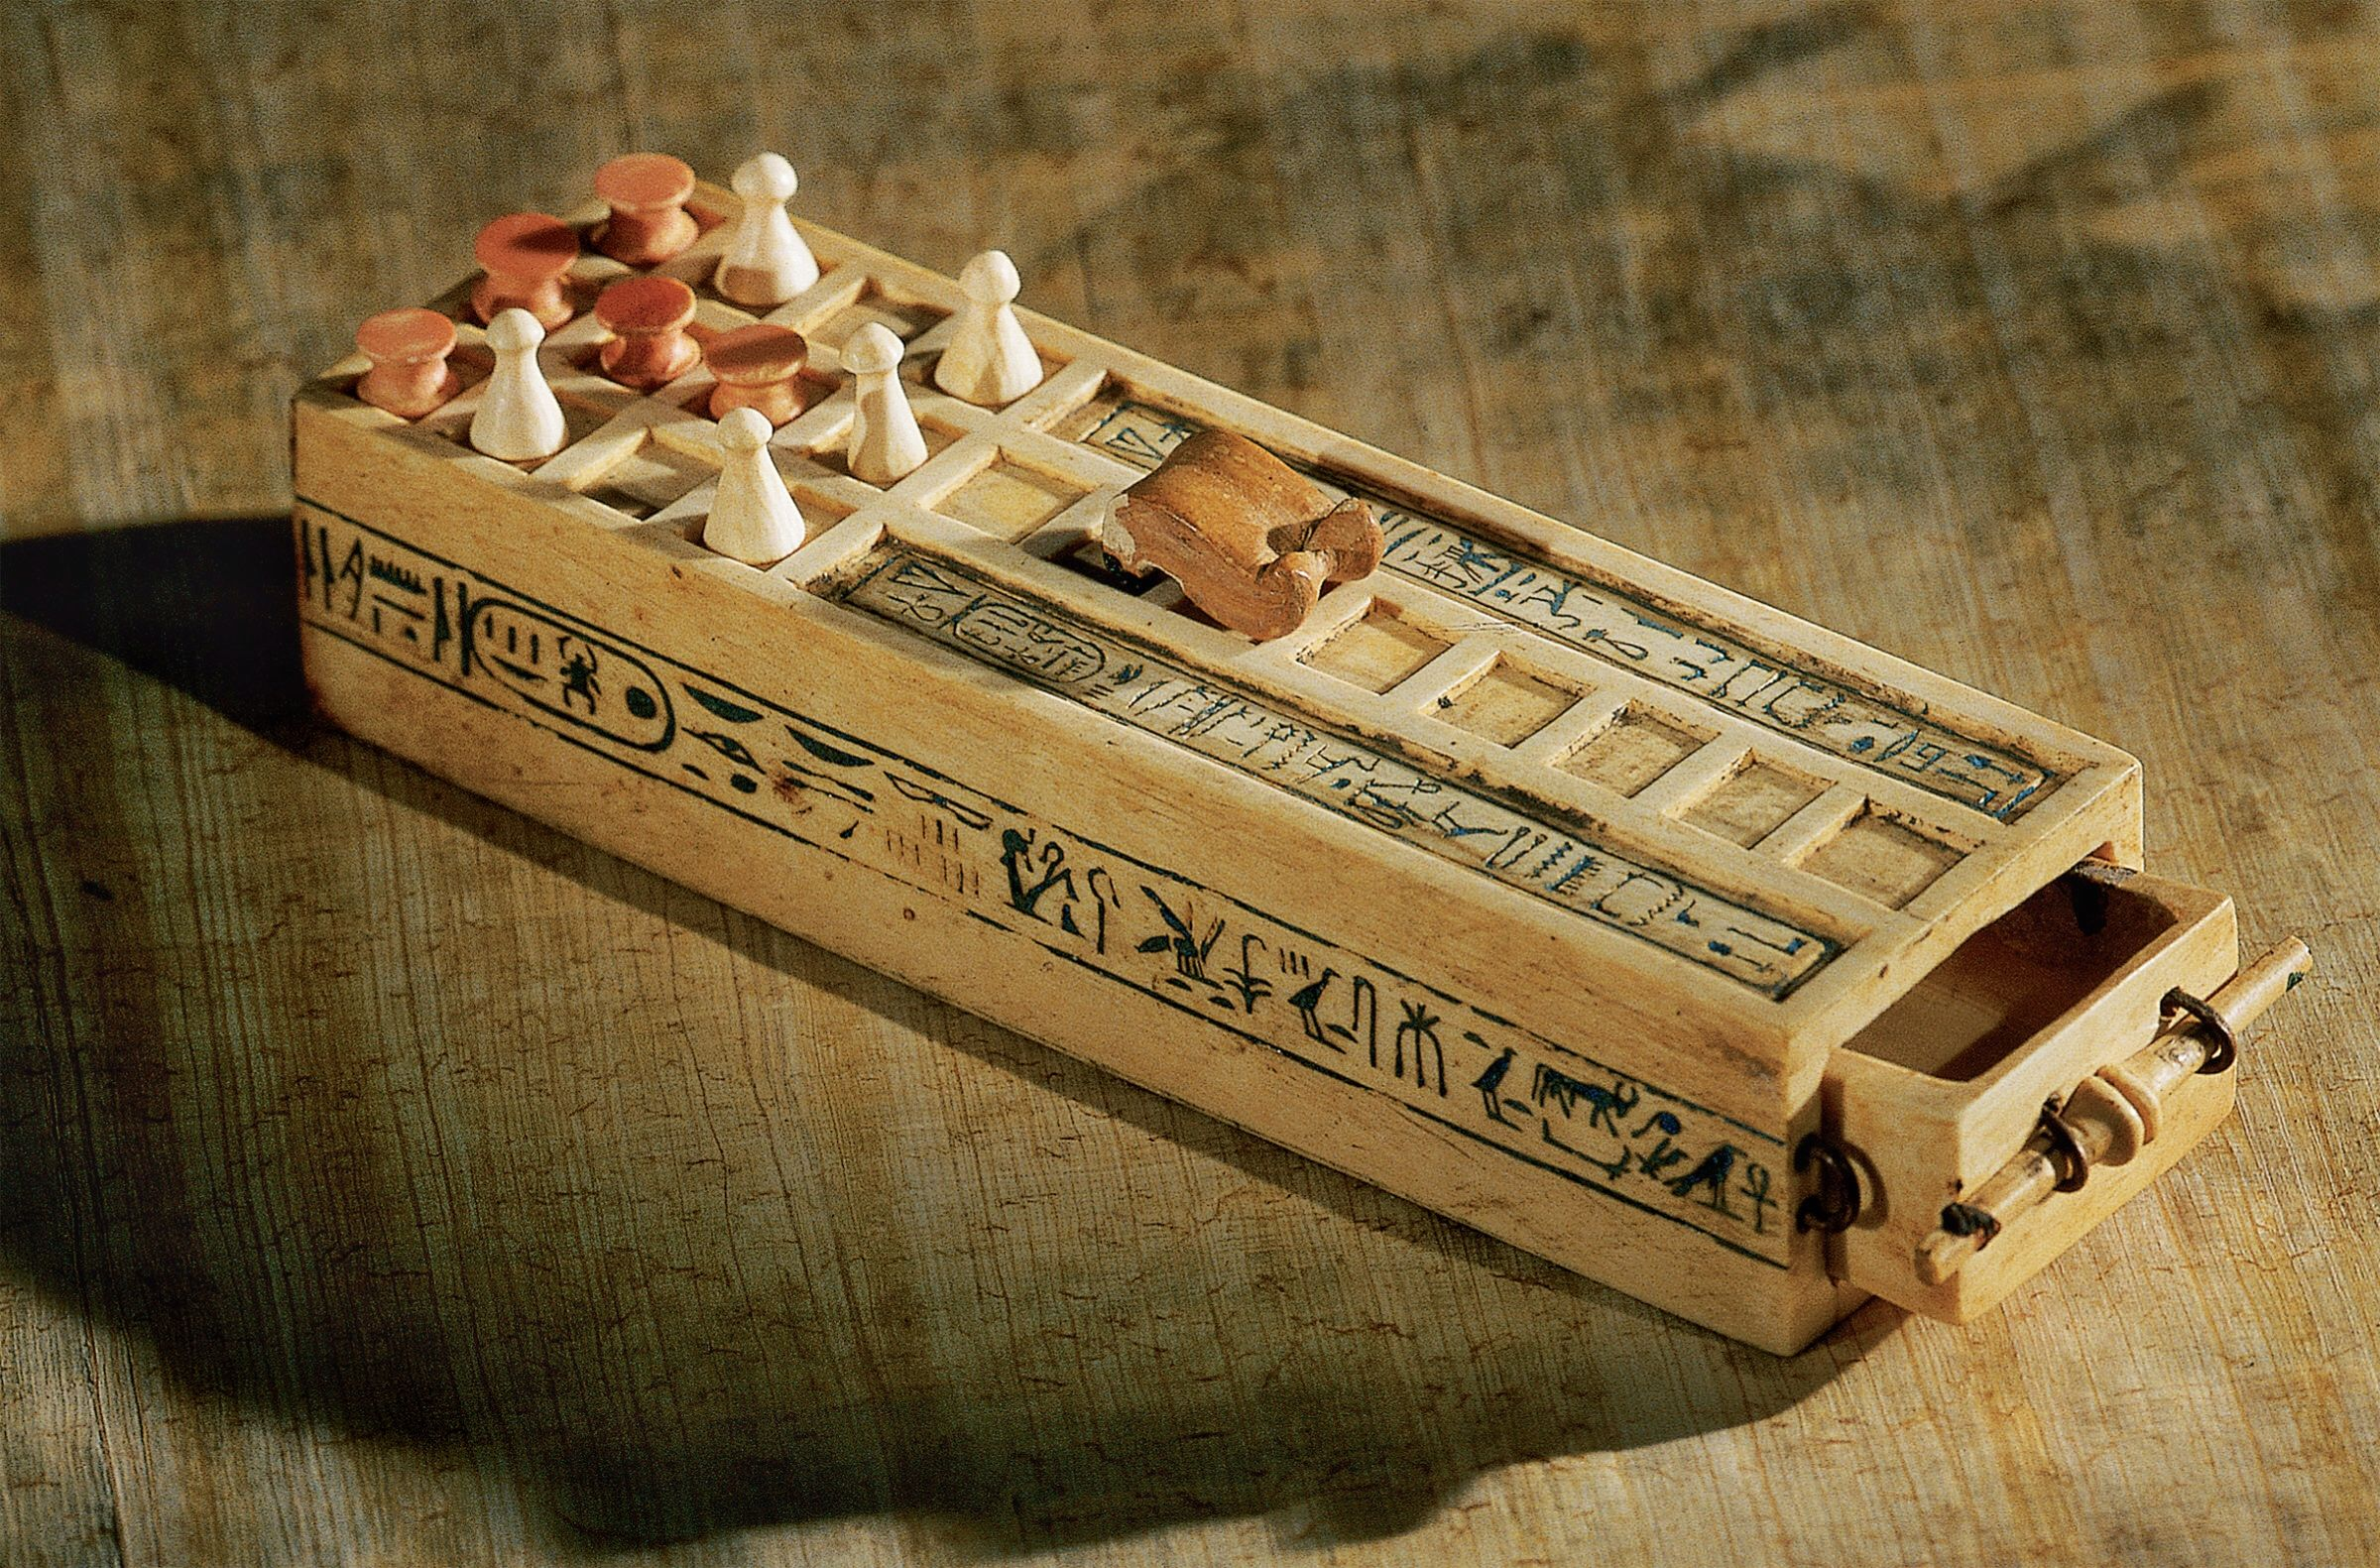 The Curse Of King Tuts Tomb Torrent: One Of Four Board Games Found Buried With King Tut, 3,000